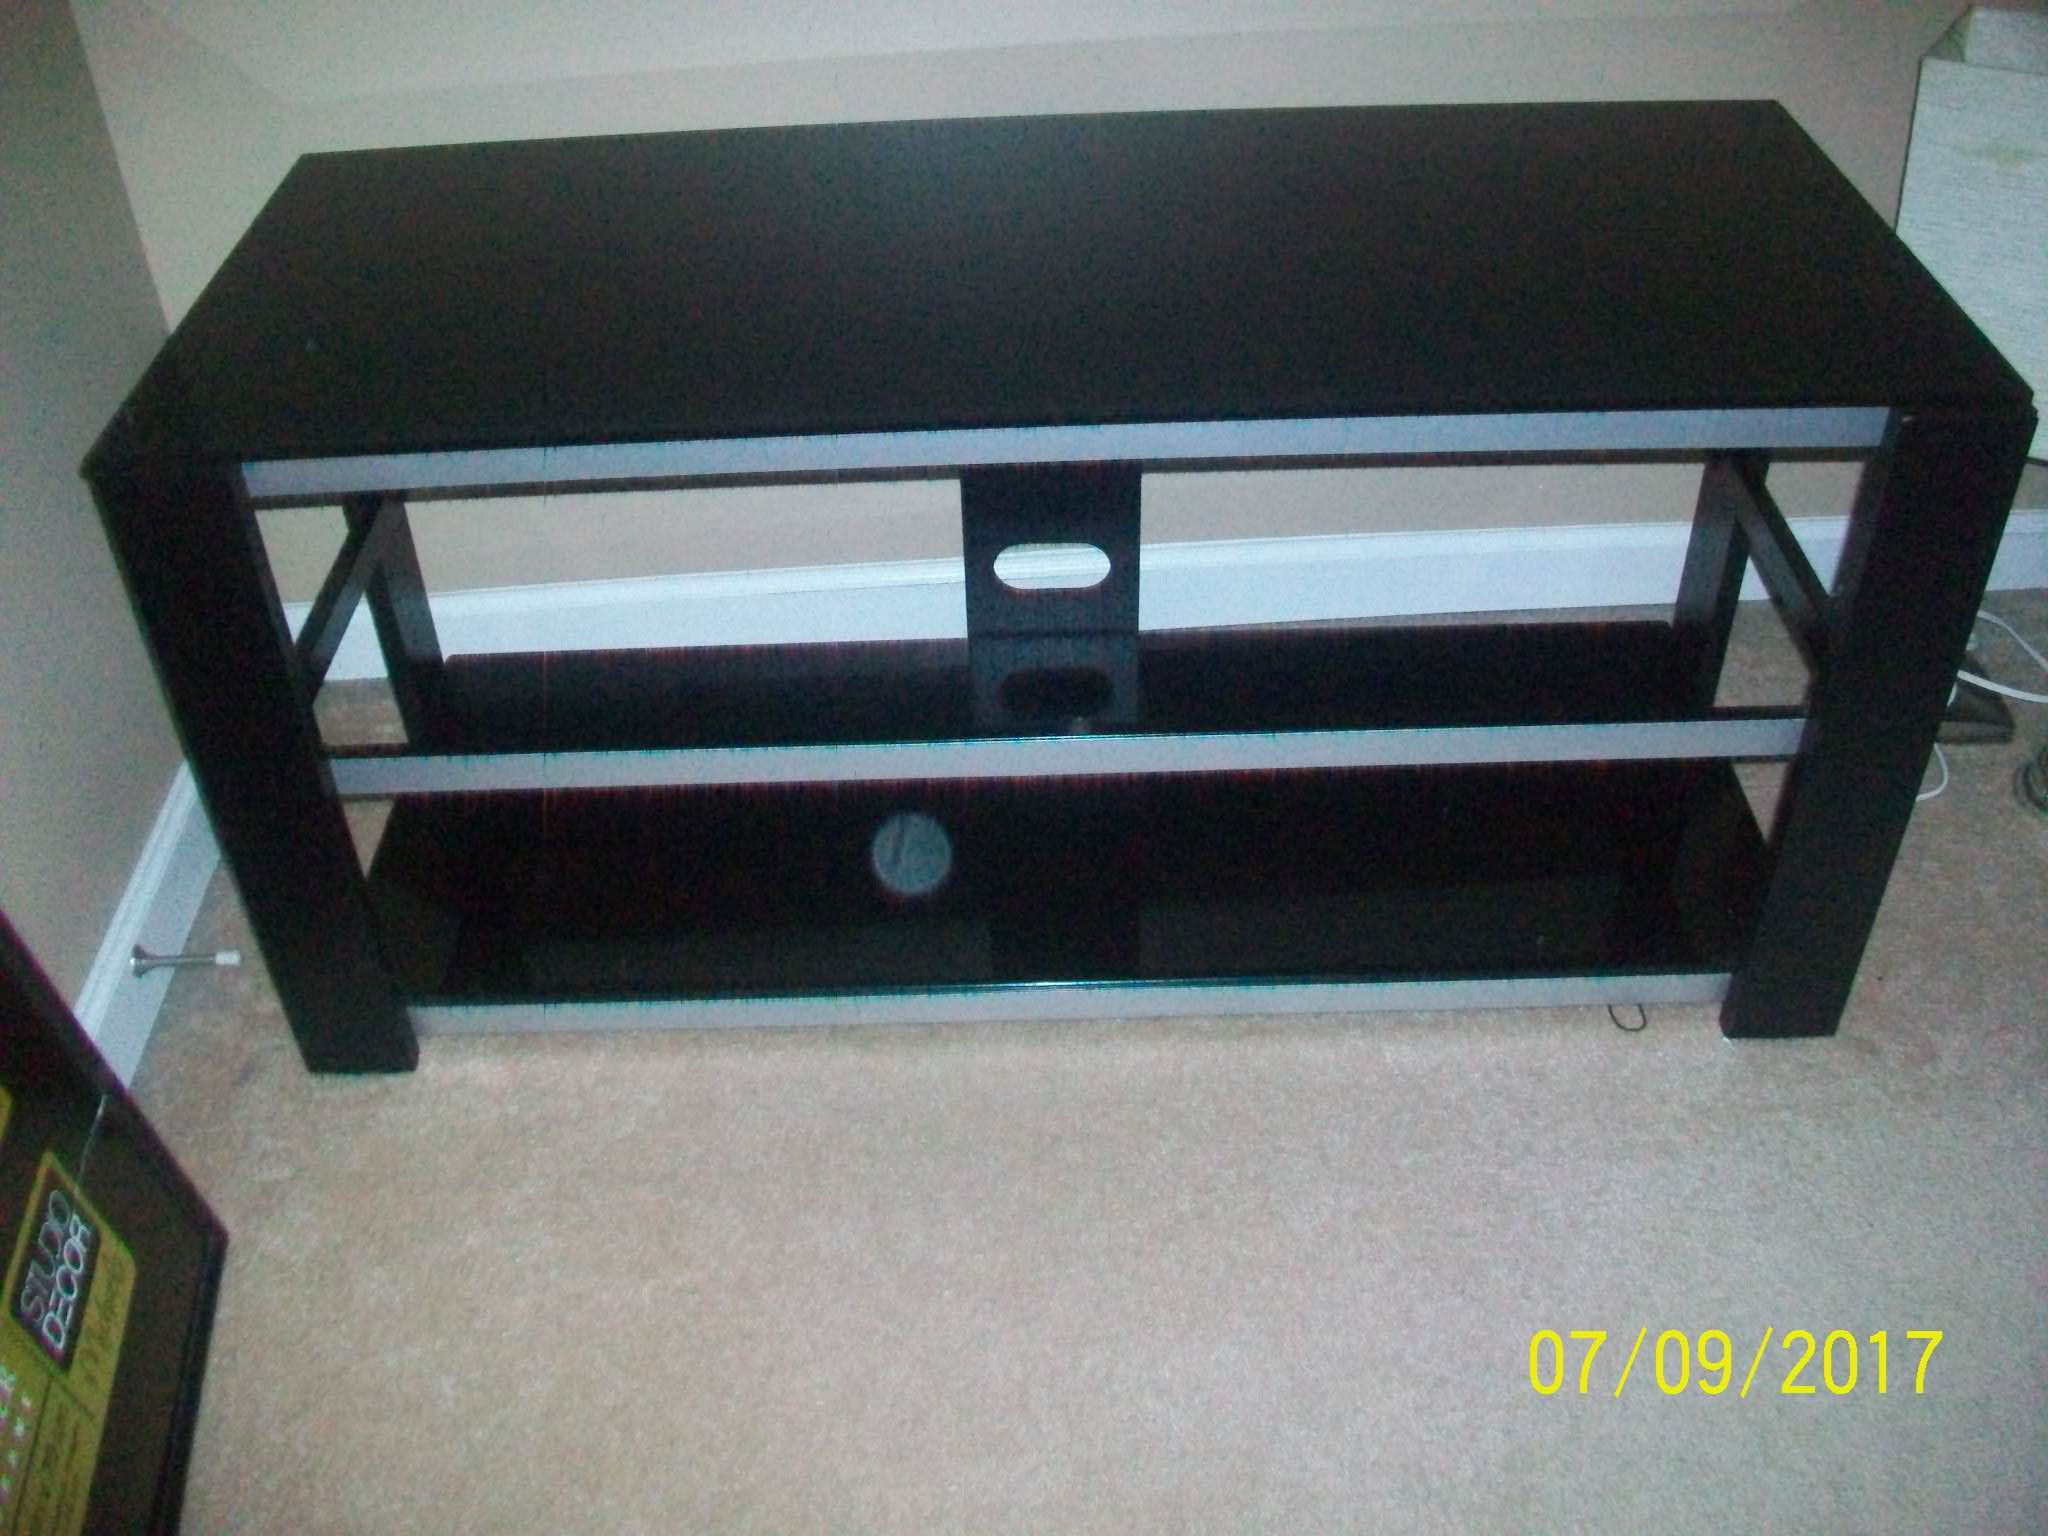 single twin bed and bed framebox for sale - Home Decor For Sale